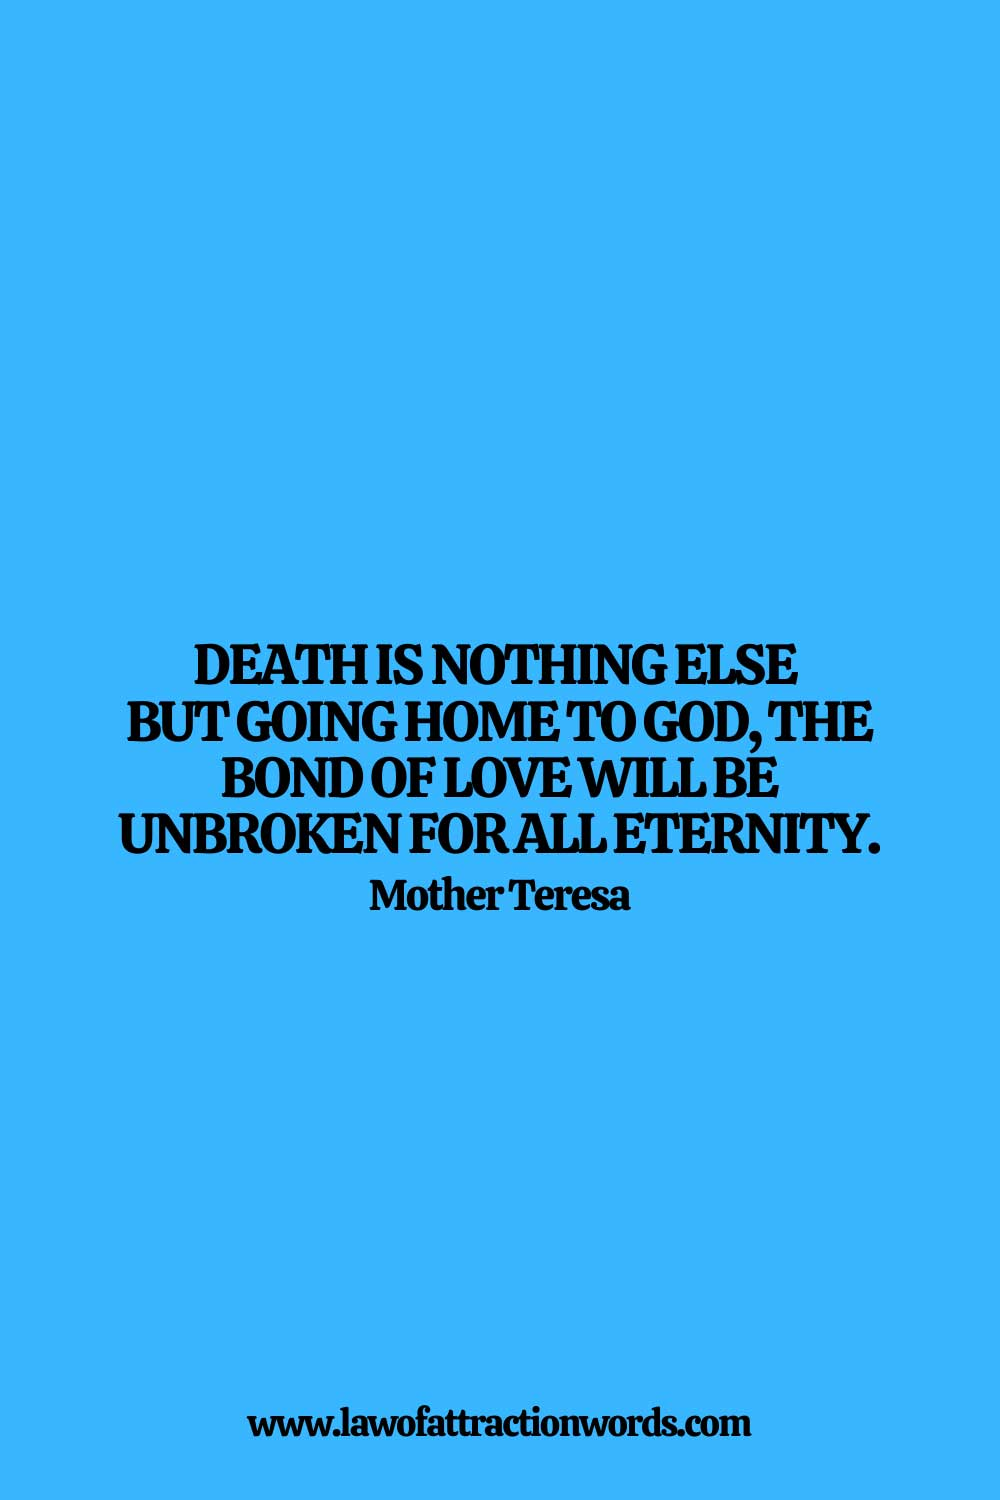 Famous Spiritual Quotes For Death Of A Loved One